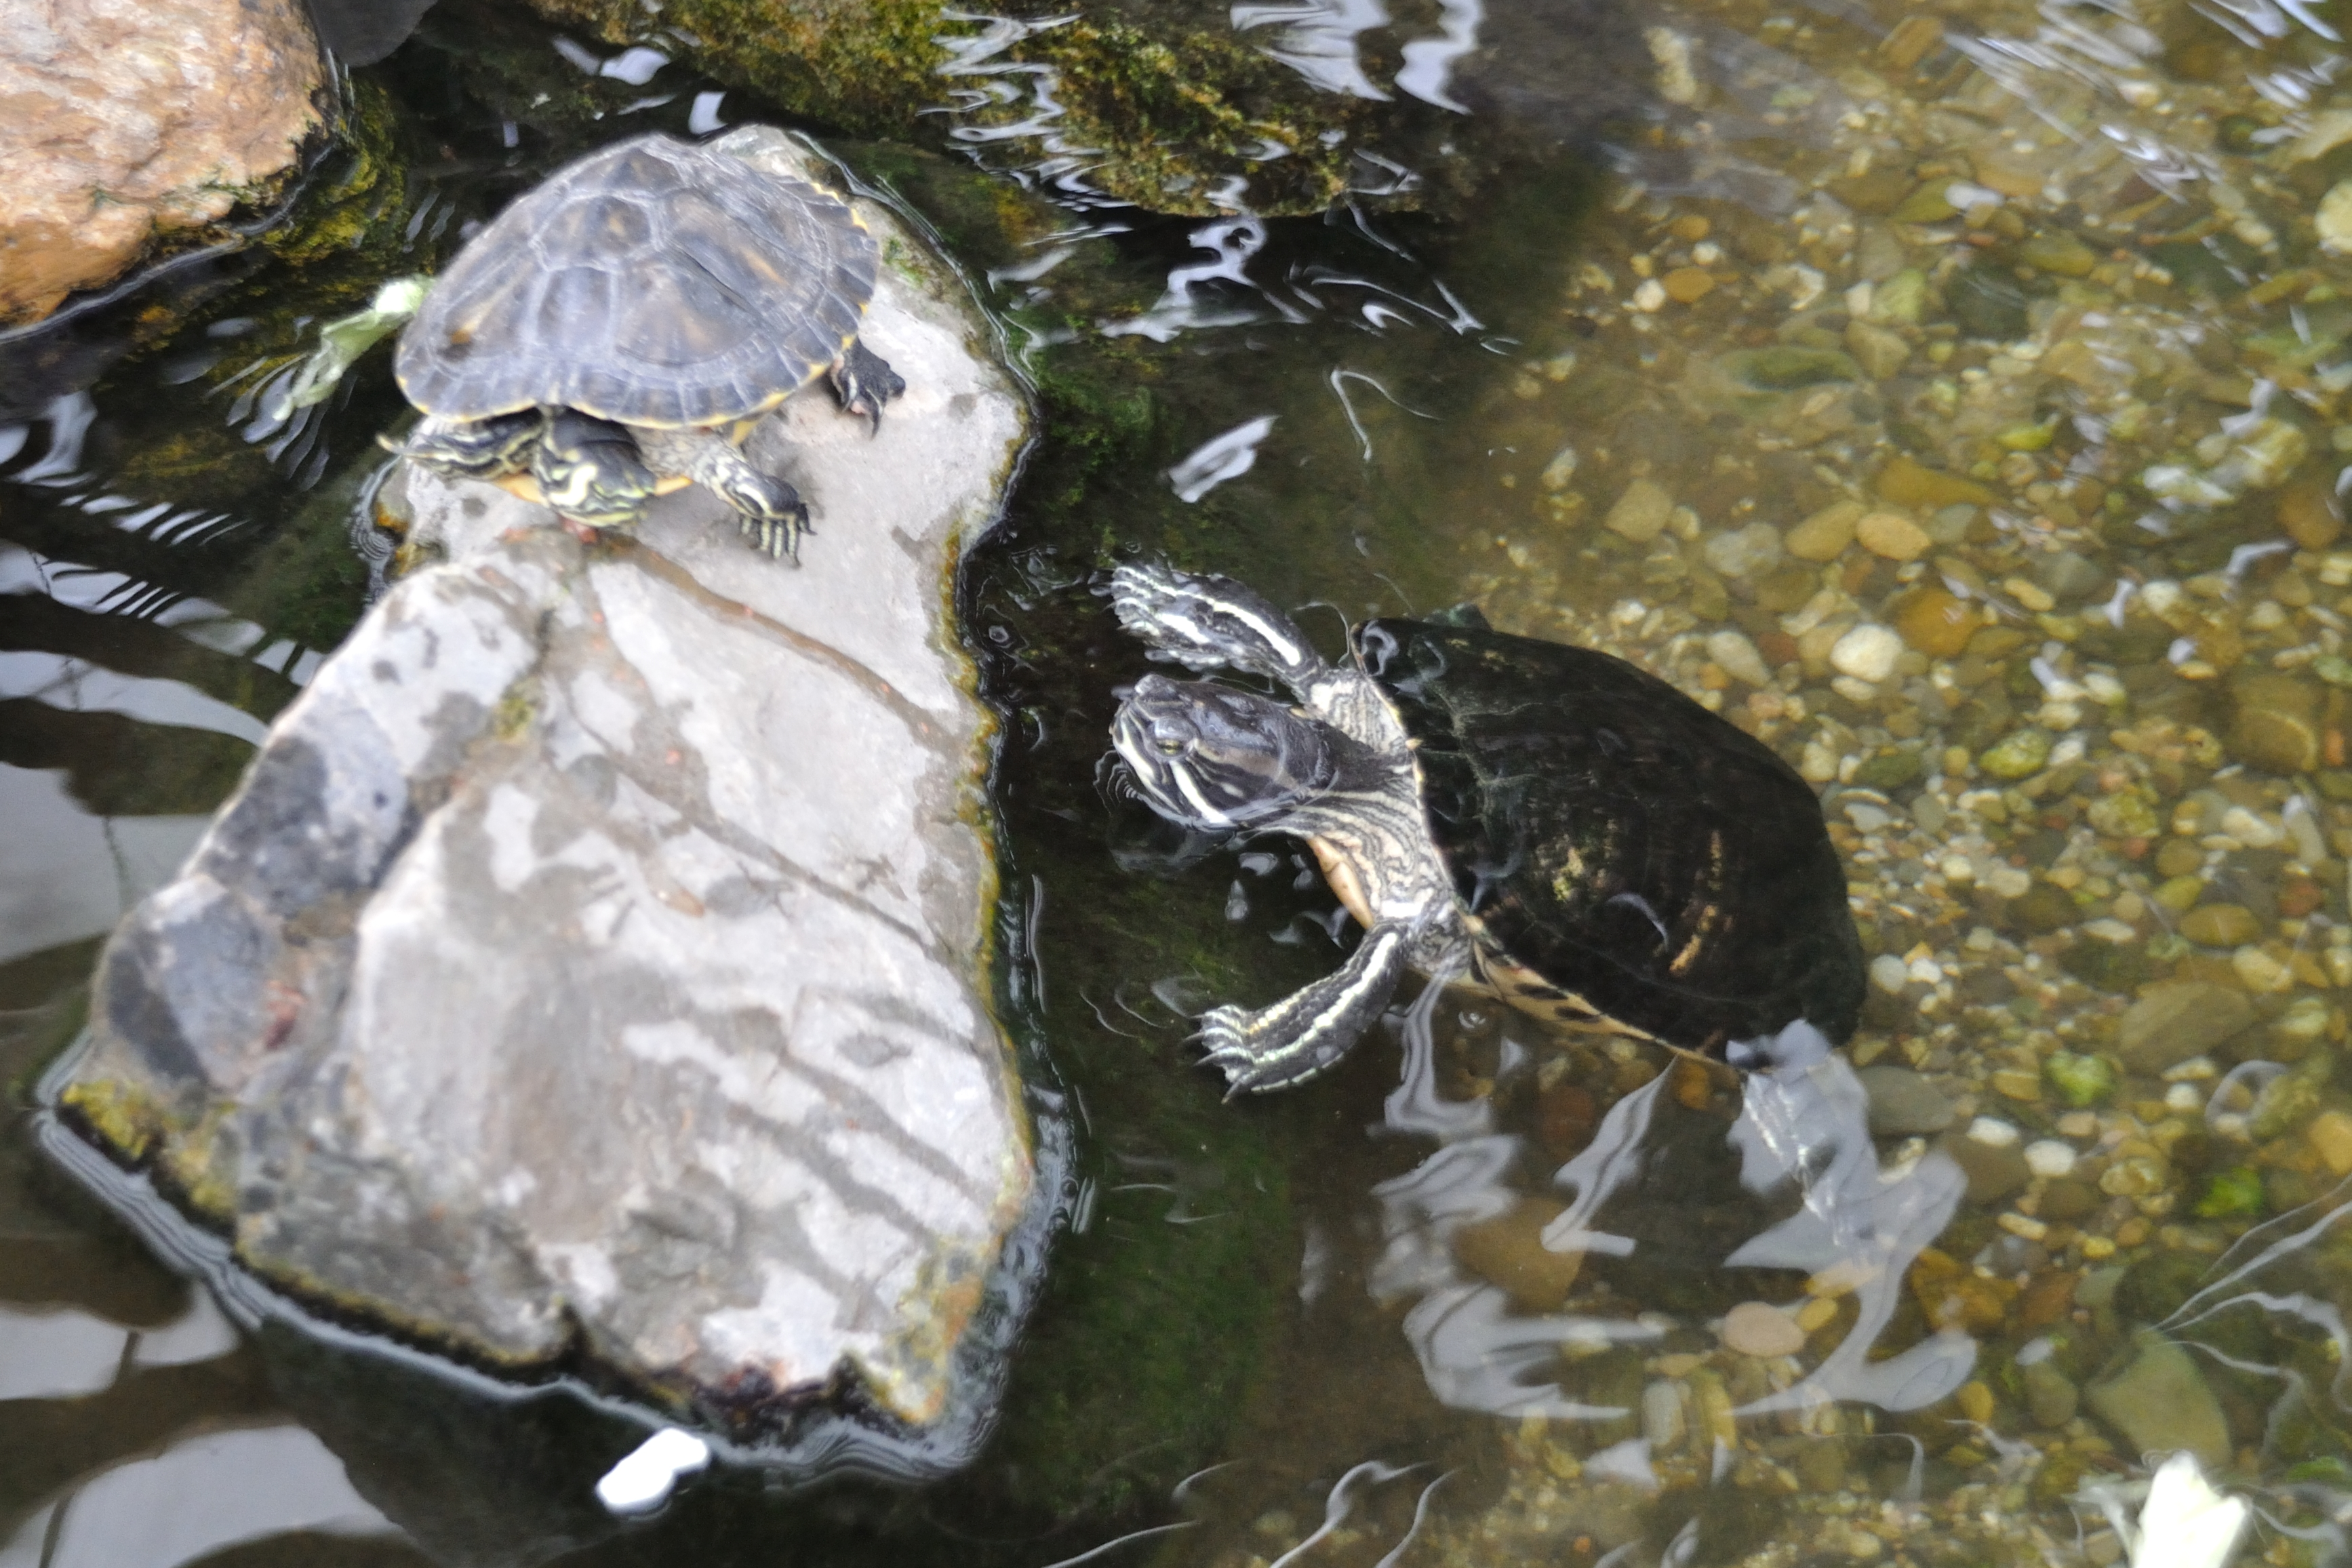 Turtle Care Sheets - All Turtles